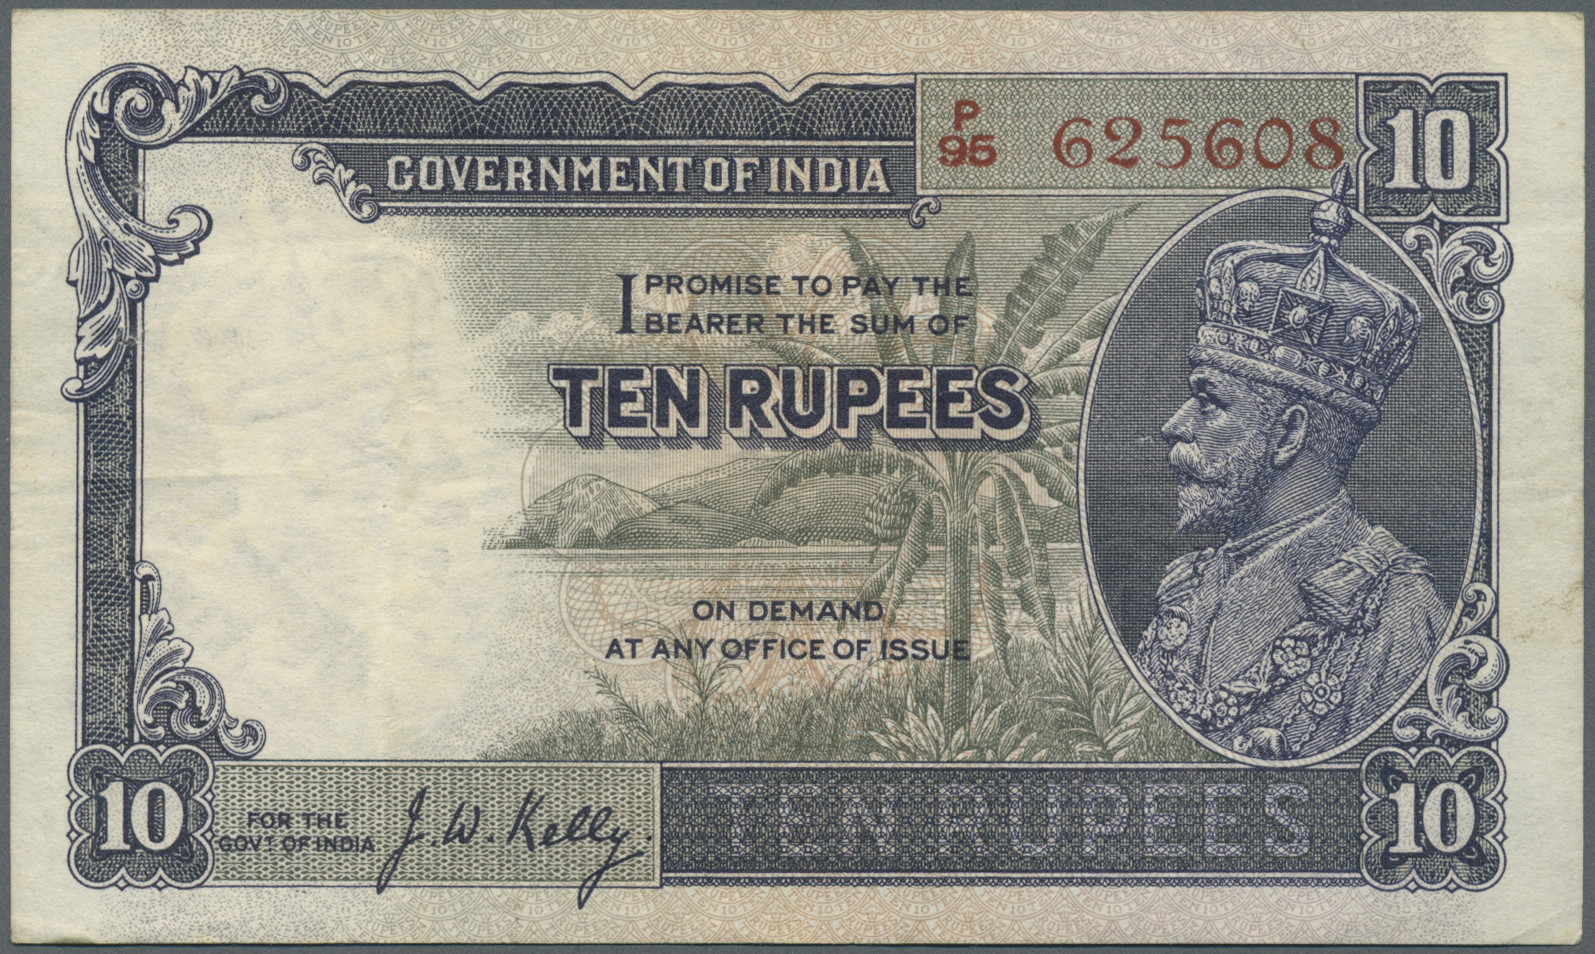 Lot 825 - India / Indien | Banknoten  -  Auktionshaus Christoph Gärtner GmbH & Co. KG Banknotes Worldwide Auction #39 Day 1